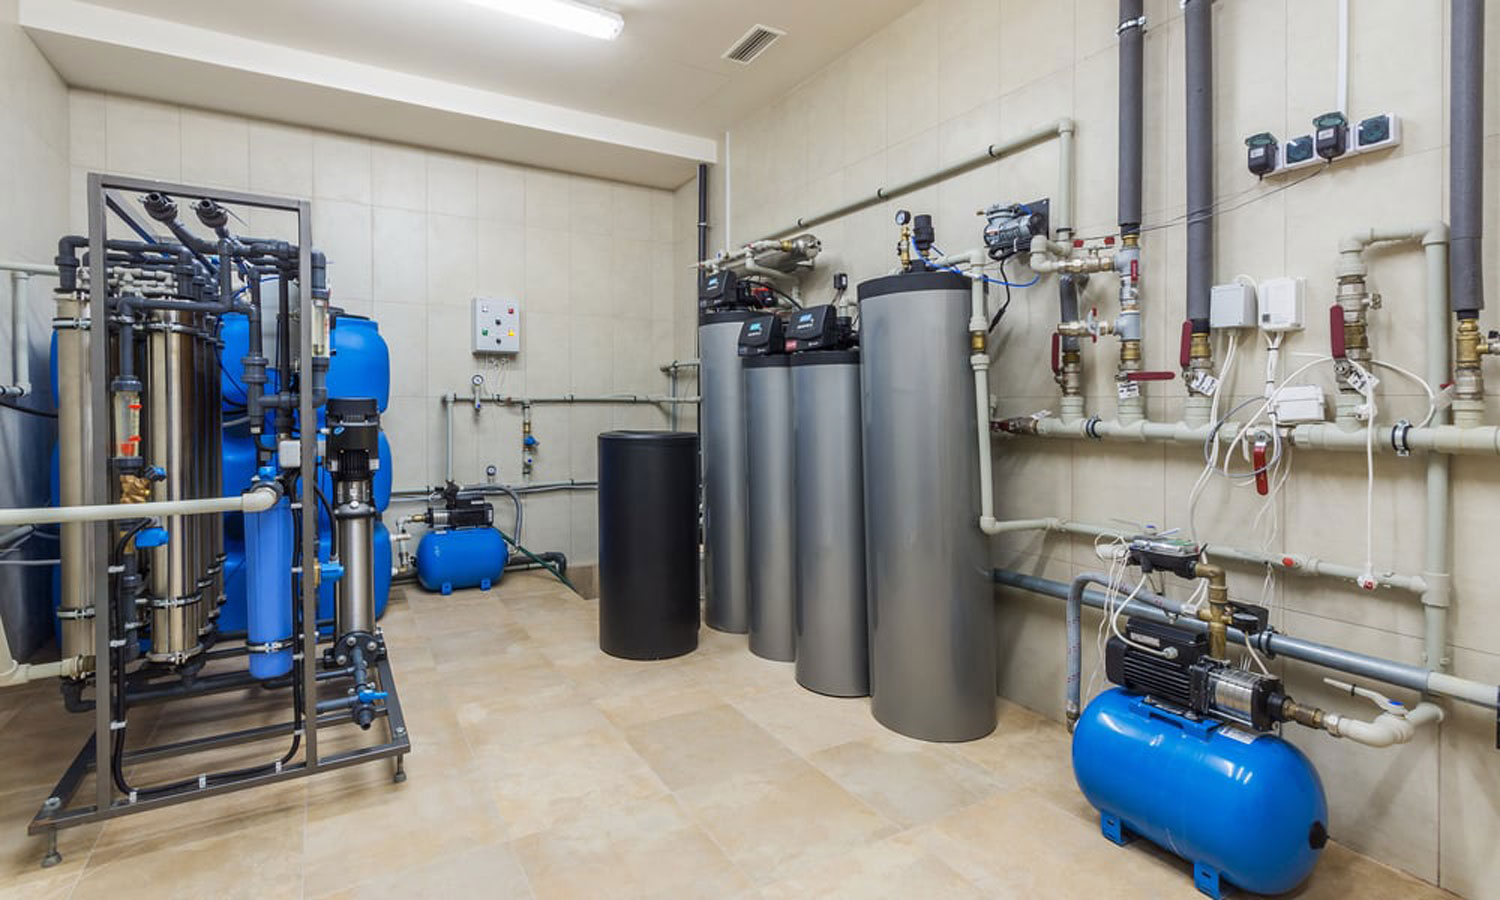 How to Install a Water Softener in a Pre-plumbed House